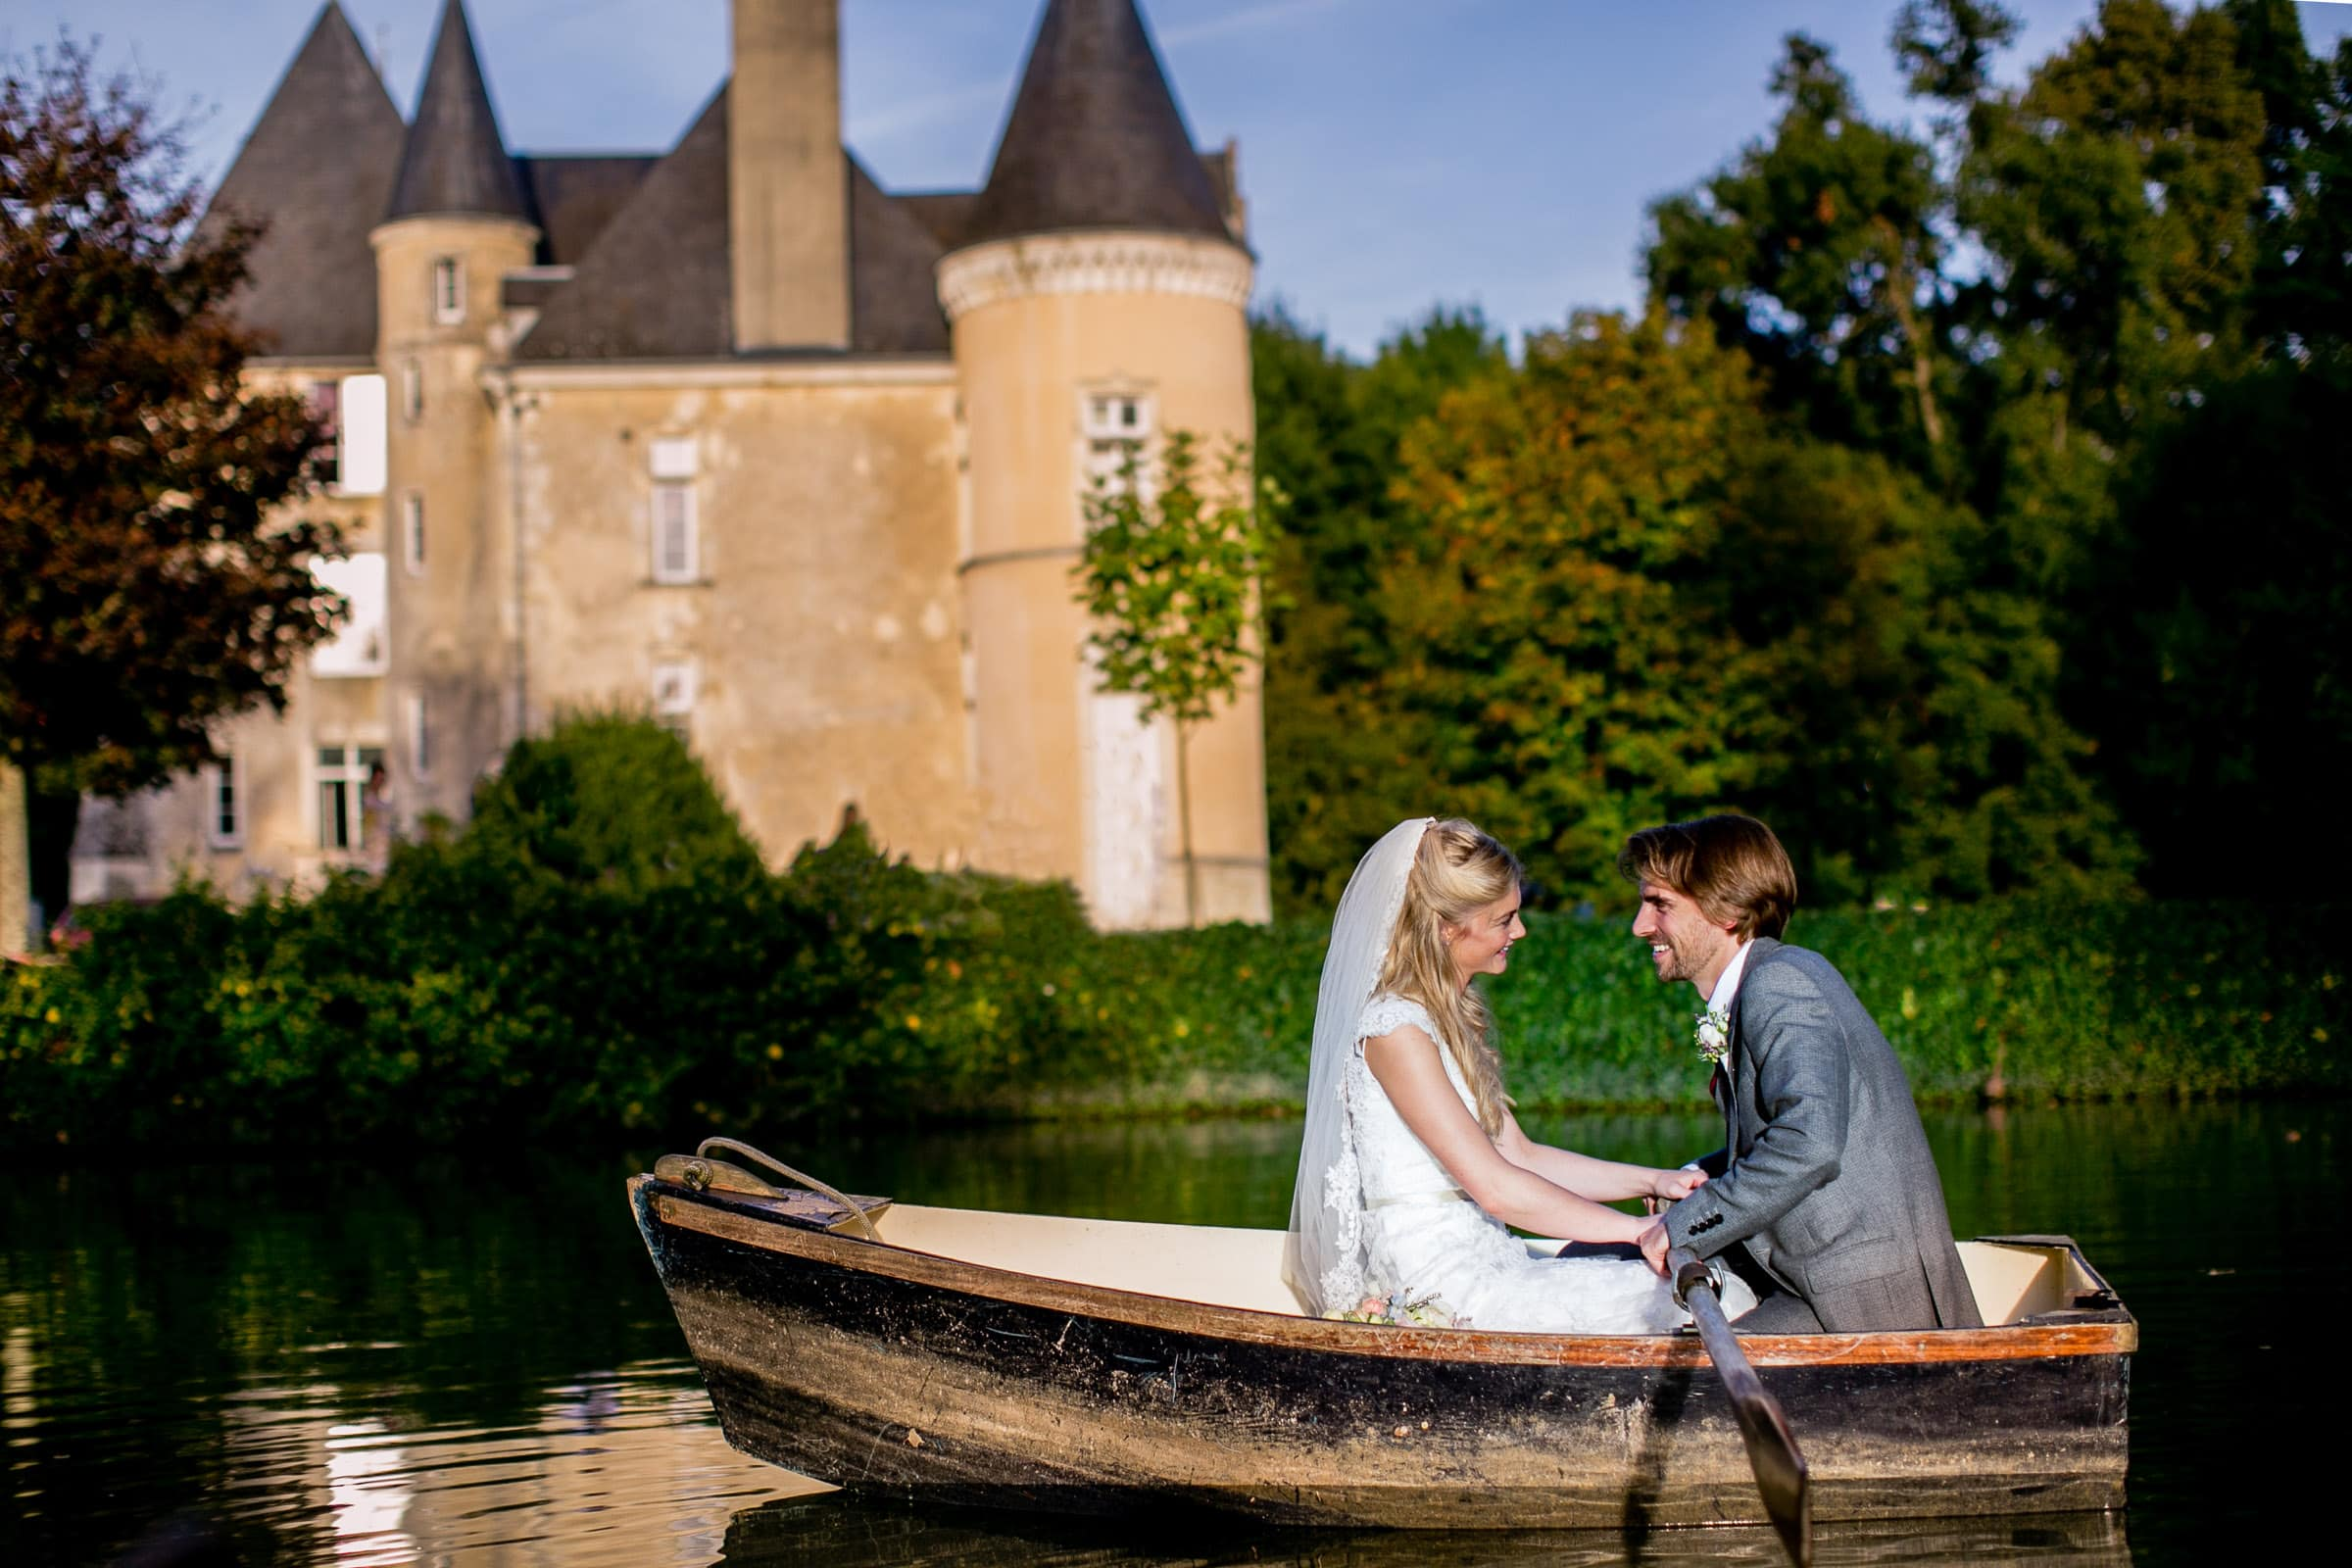 Bride and groom in a row boat during their French Chateau wedding in Normandy, France